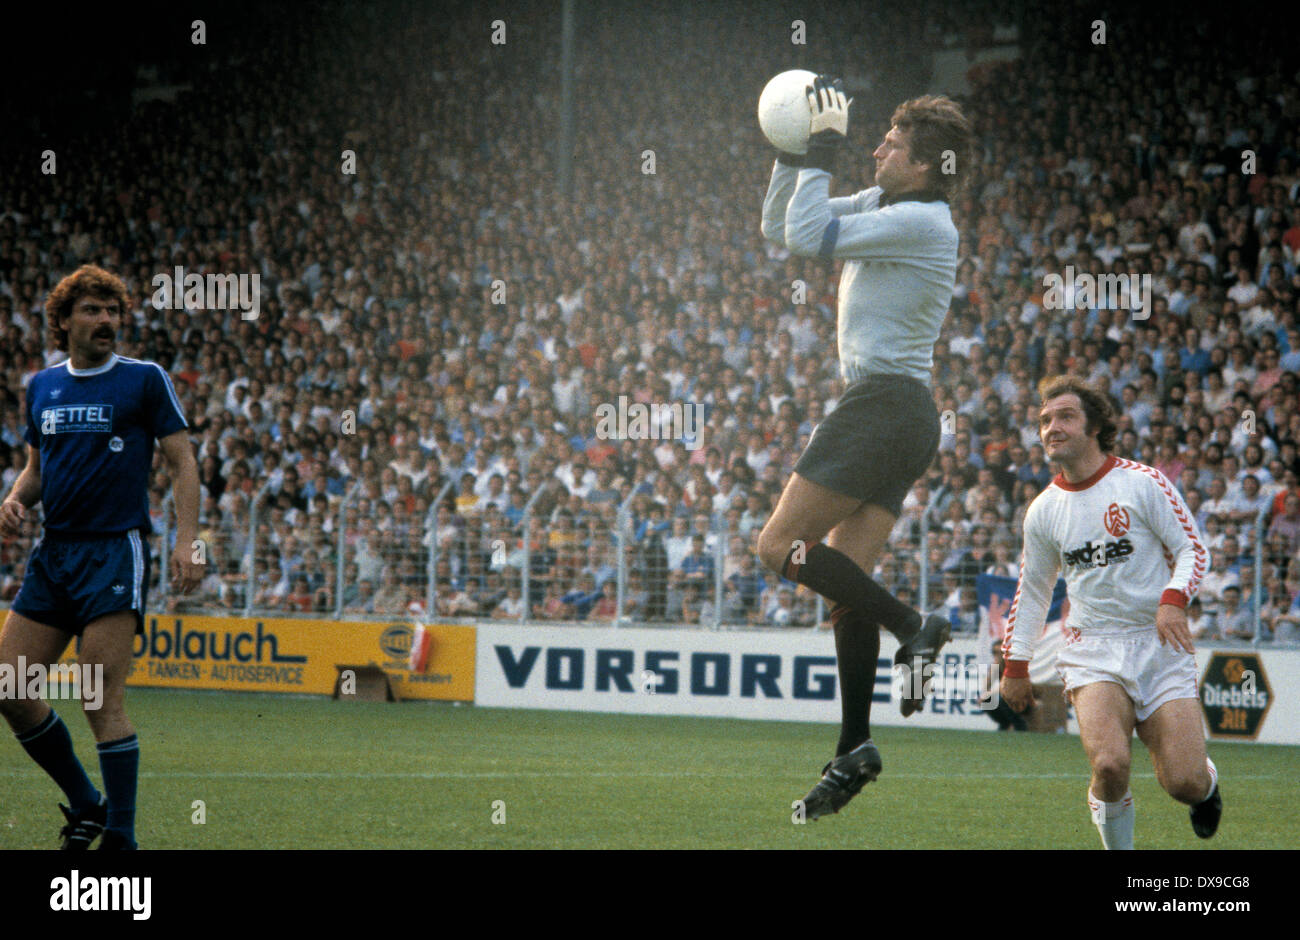 football, 2. Bundesliga Nord, 2. Bundesliga Sued, 1979/1980, relegation match to Bundesliga 1980/1981, return leg, Georg Melches Stadium, Rot Weiss Essen versus Karlsruher SC 3:1, scene of the match, f.l.t.r. Rainer Ulrich (KSC), keeper Rudolf Wimmer (KSC - Stock Image